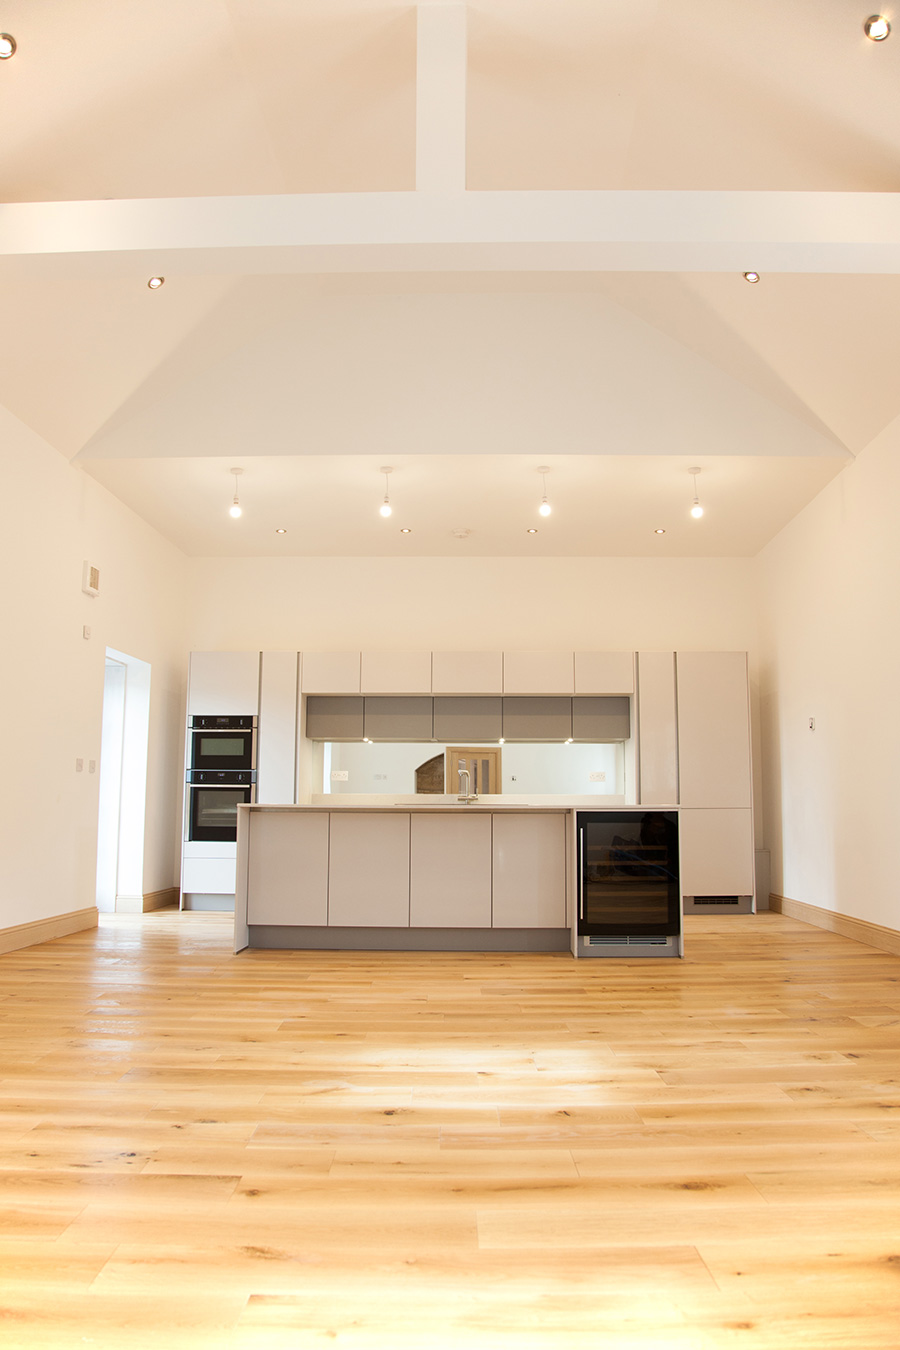 Dining kitchen with vaulted ceiling